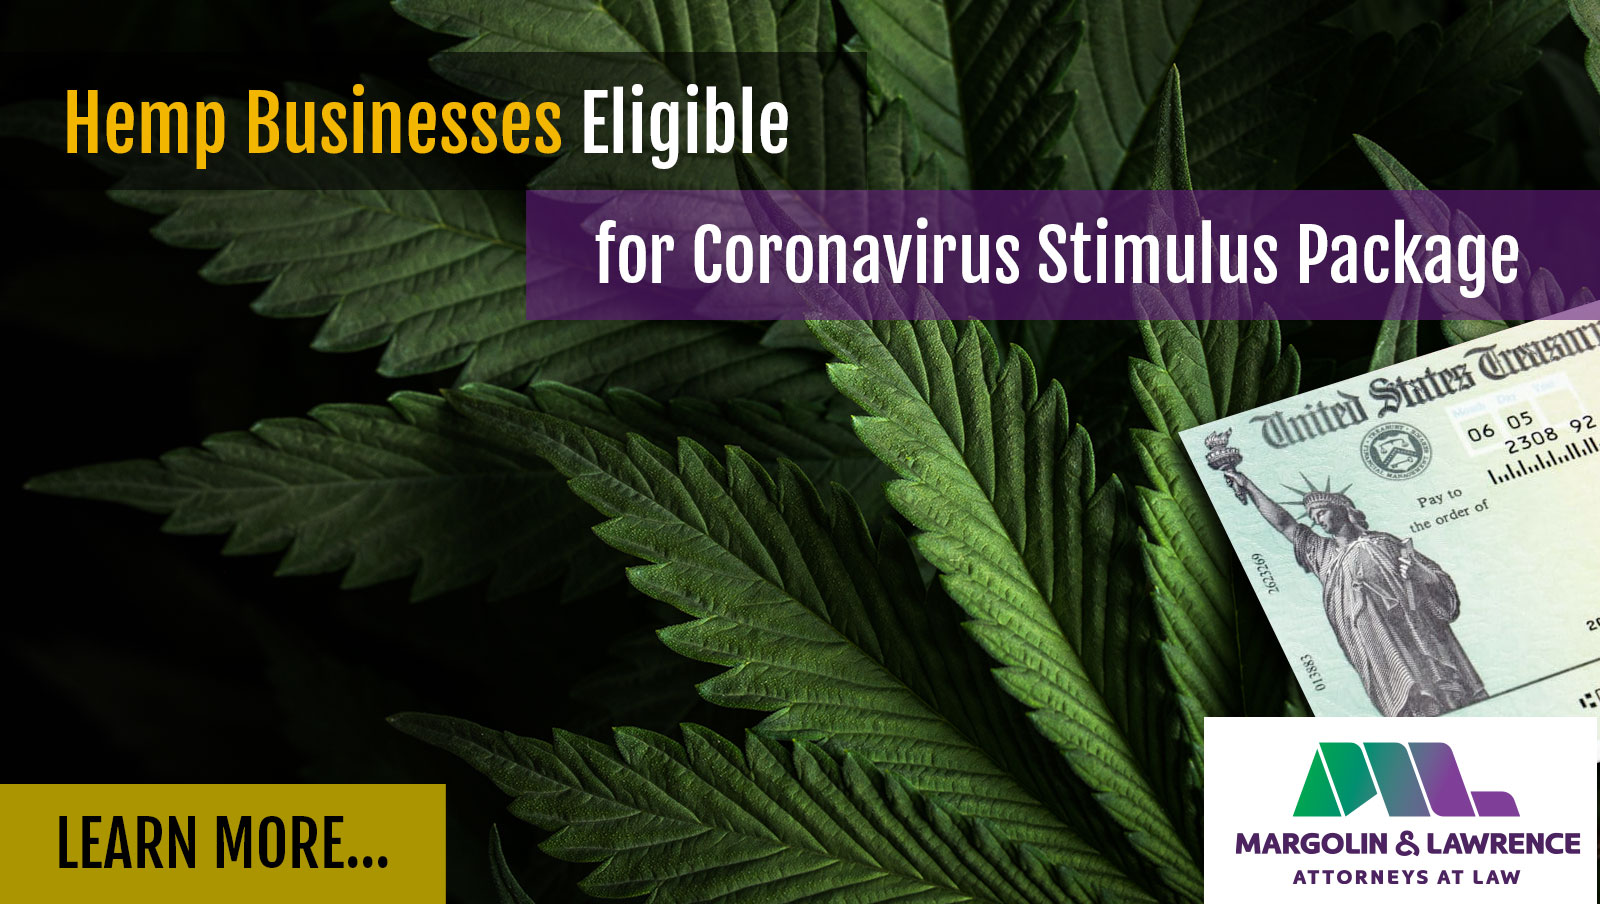 Hemp Businesses Eligible for Coronavirus Stimulus Package